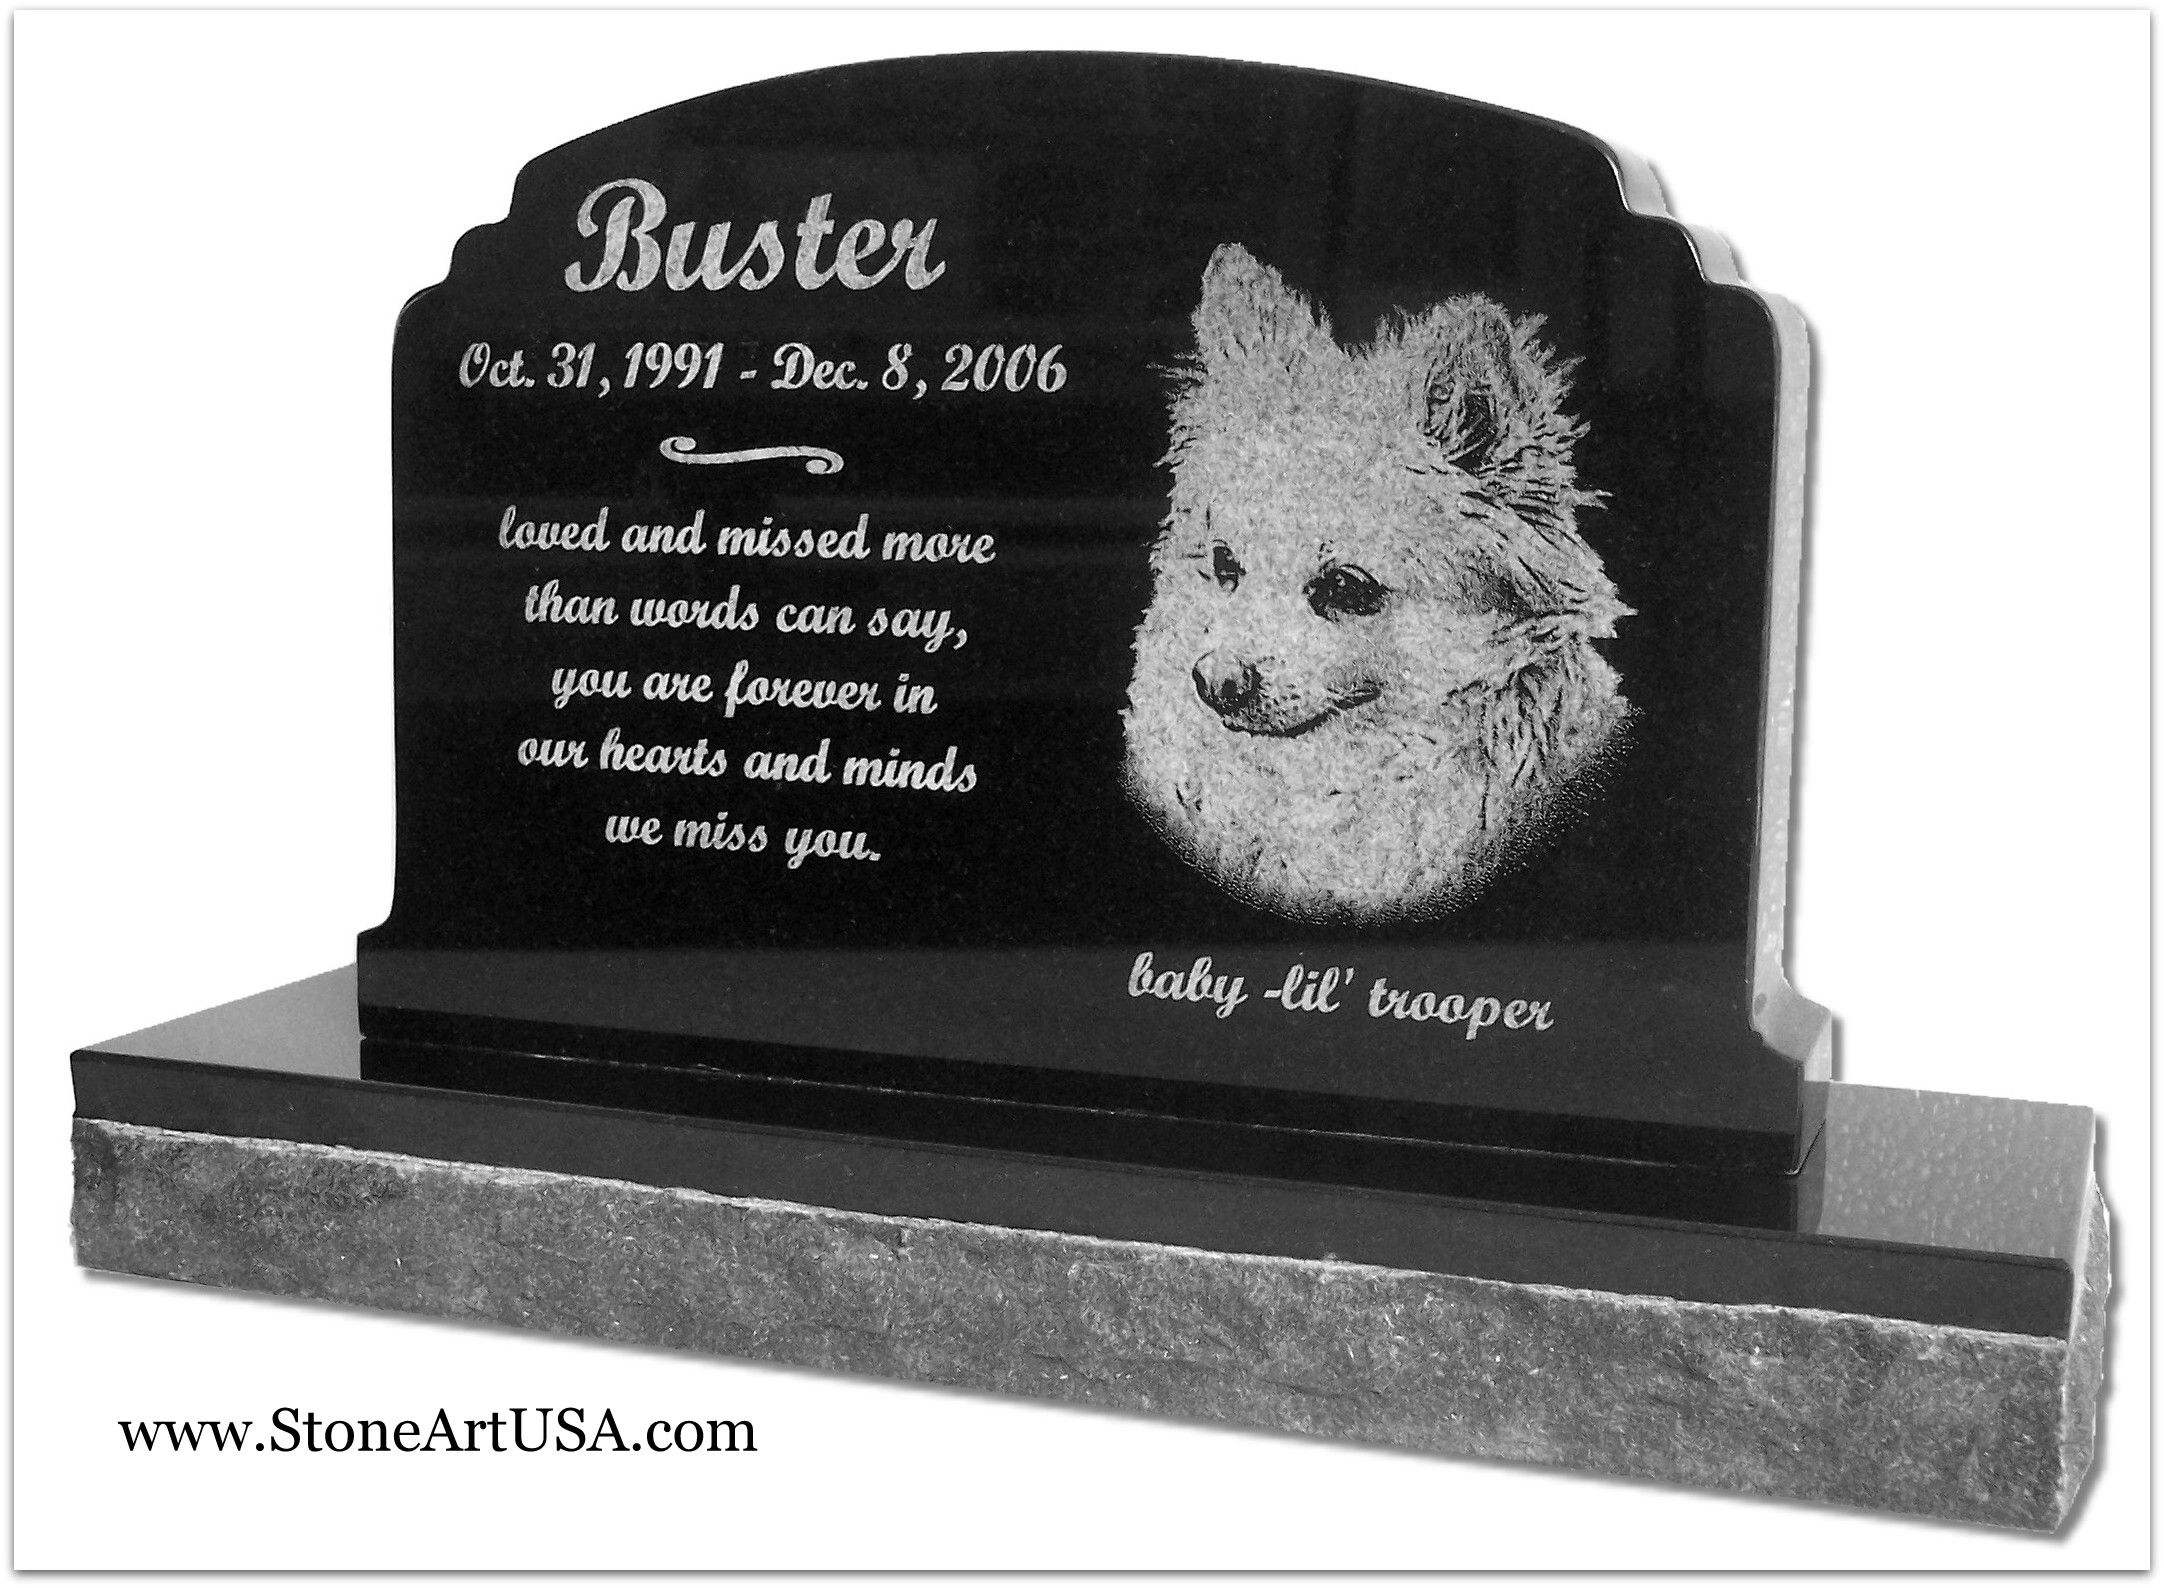 r i p buster new ideas for pet grave stones the granite